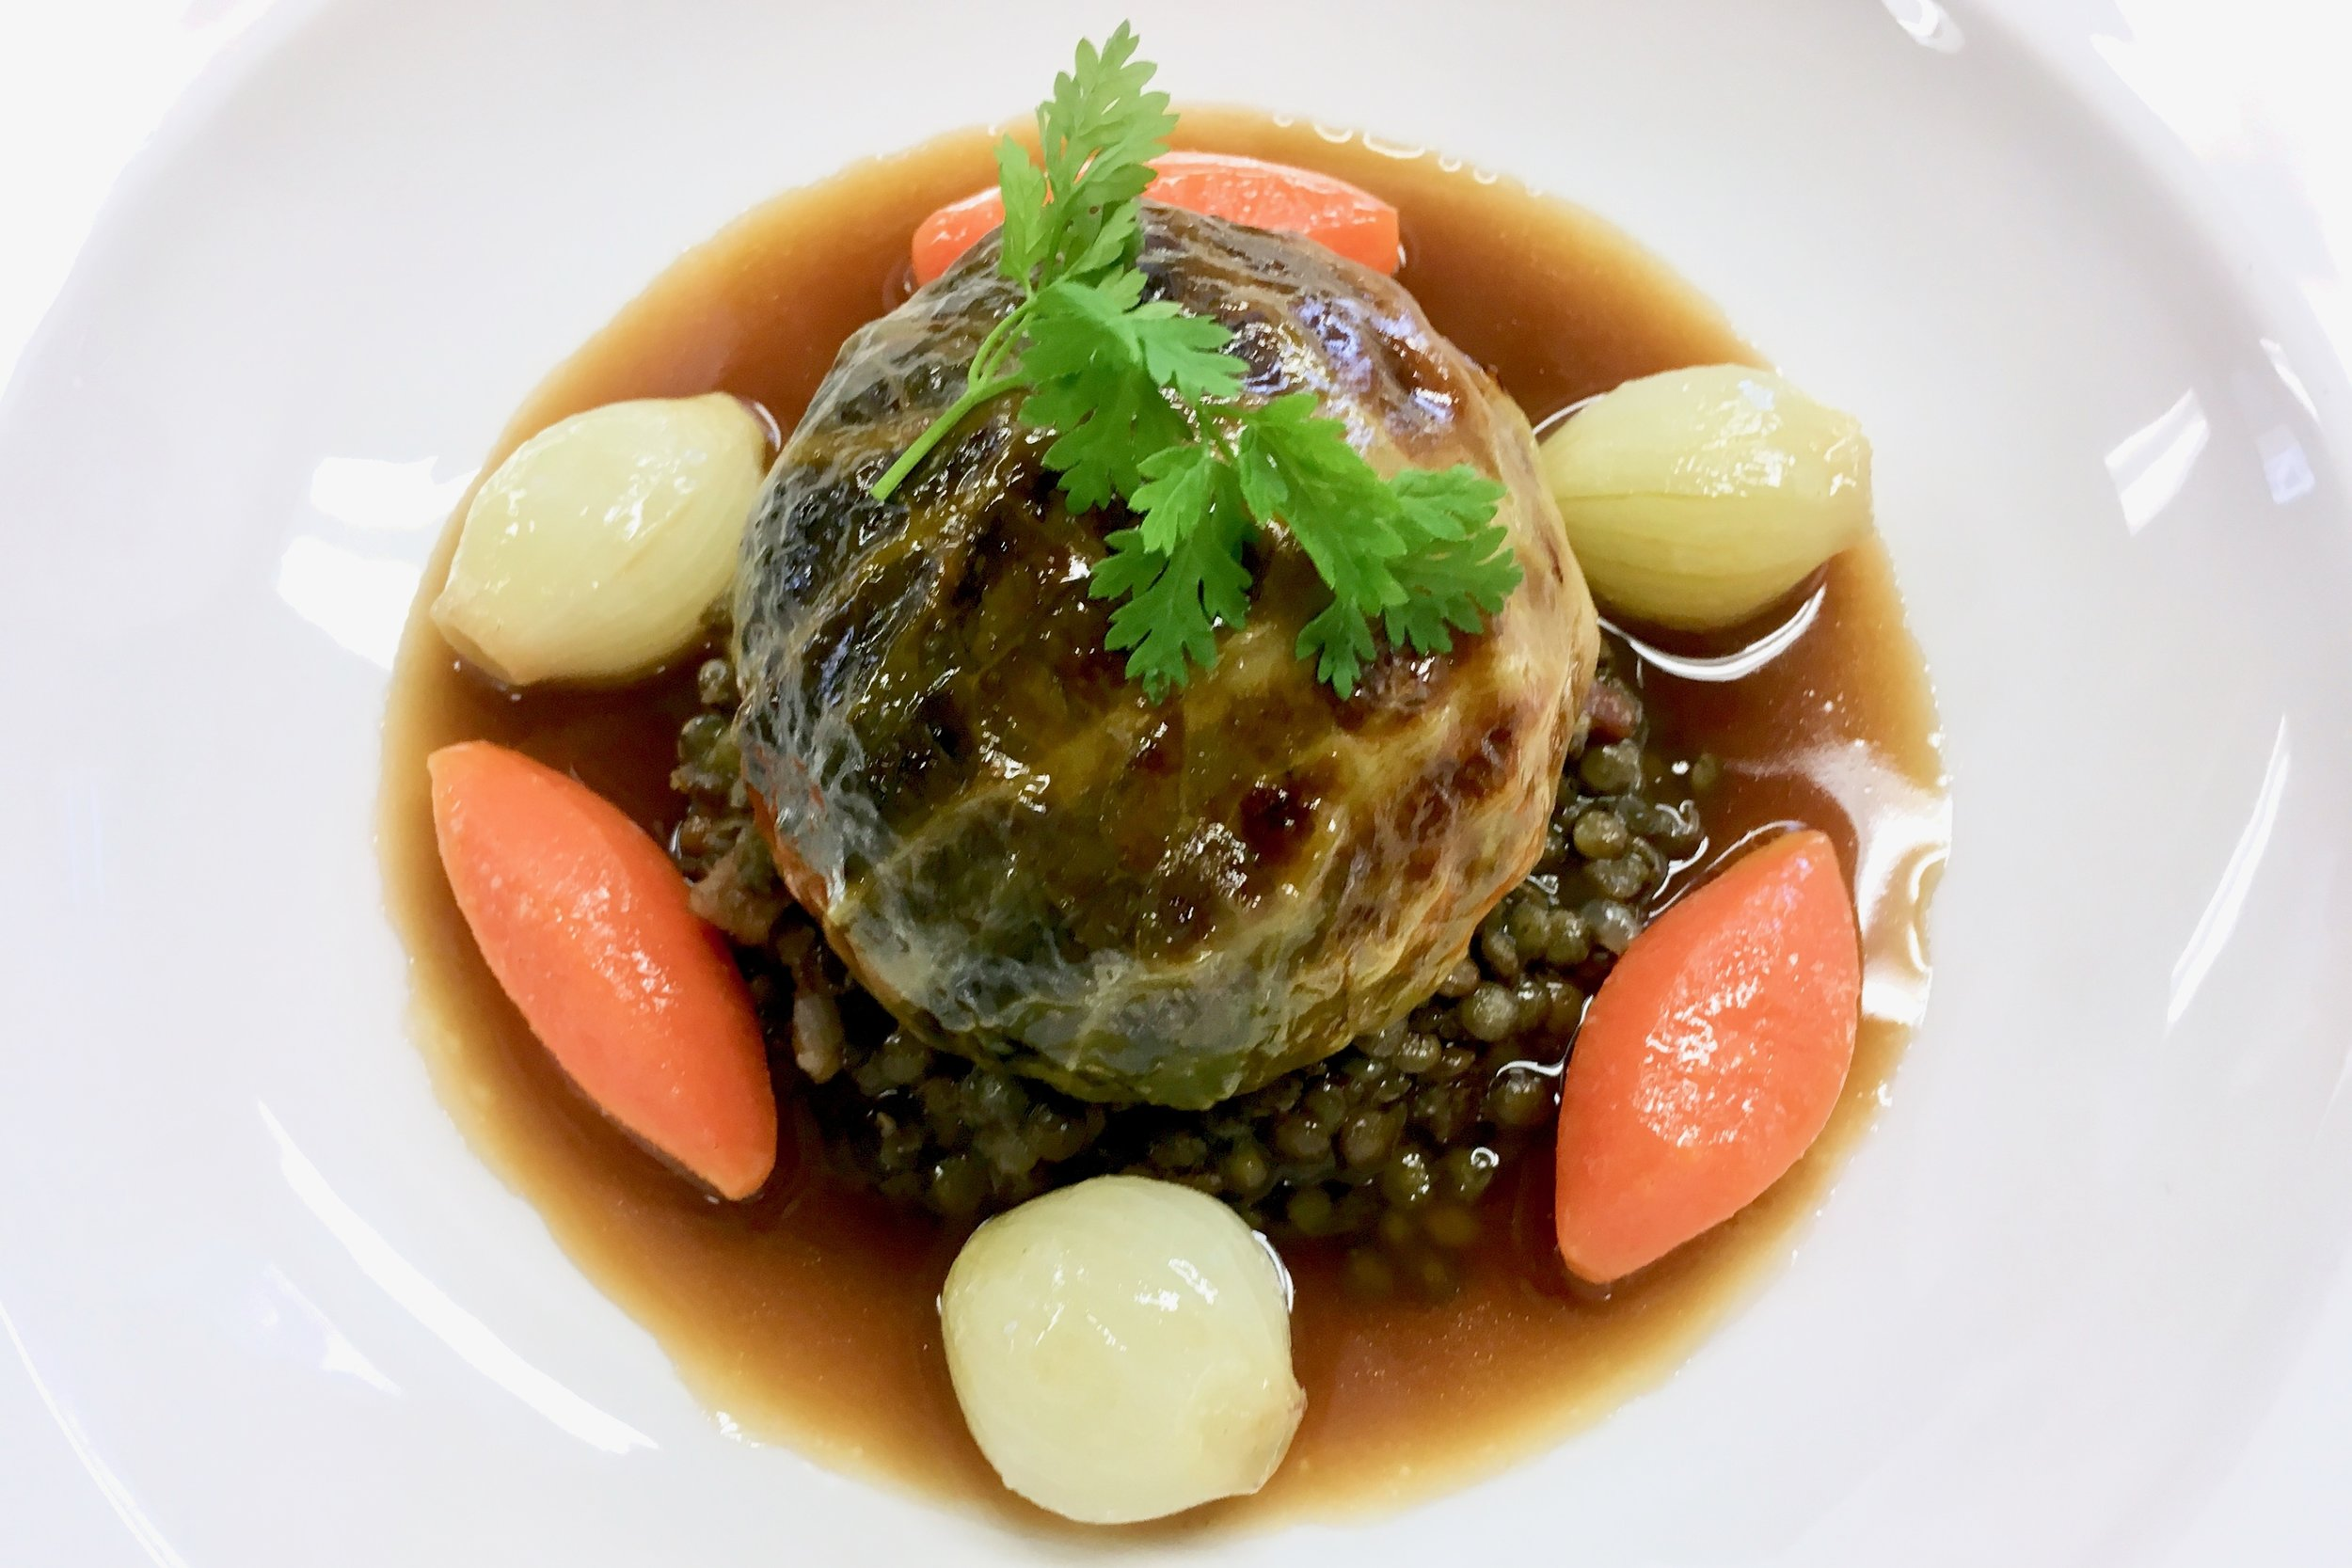 Chef's stuffed cabbage and lentil stew